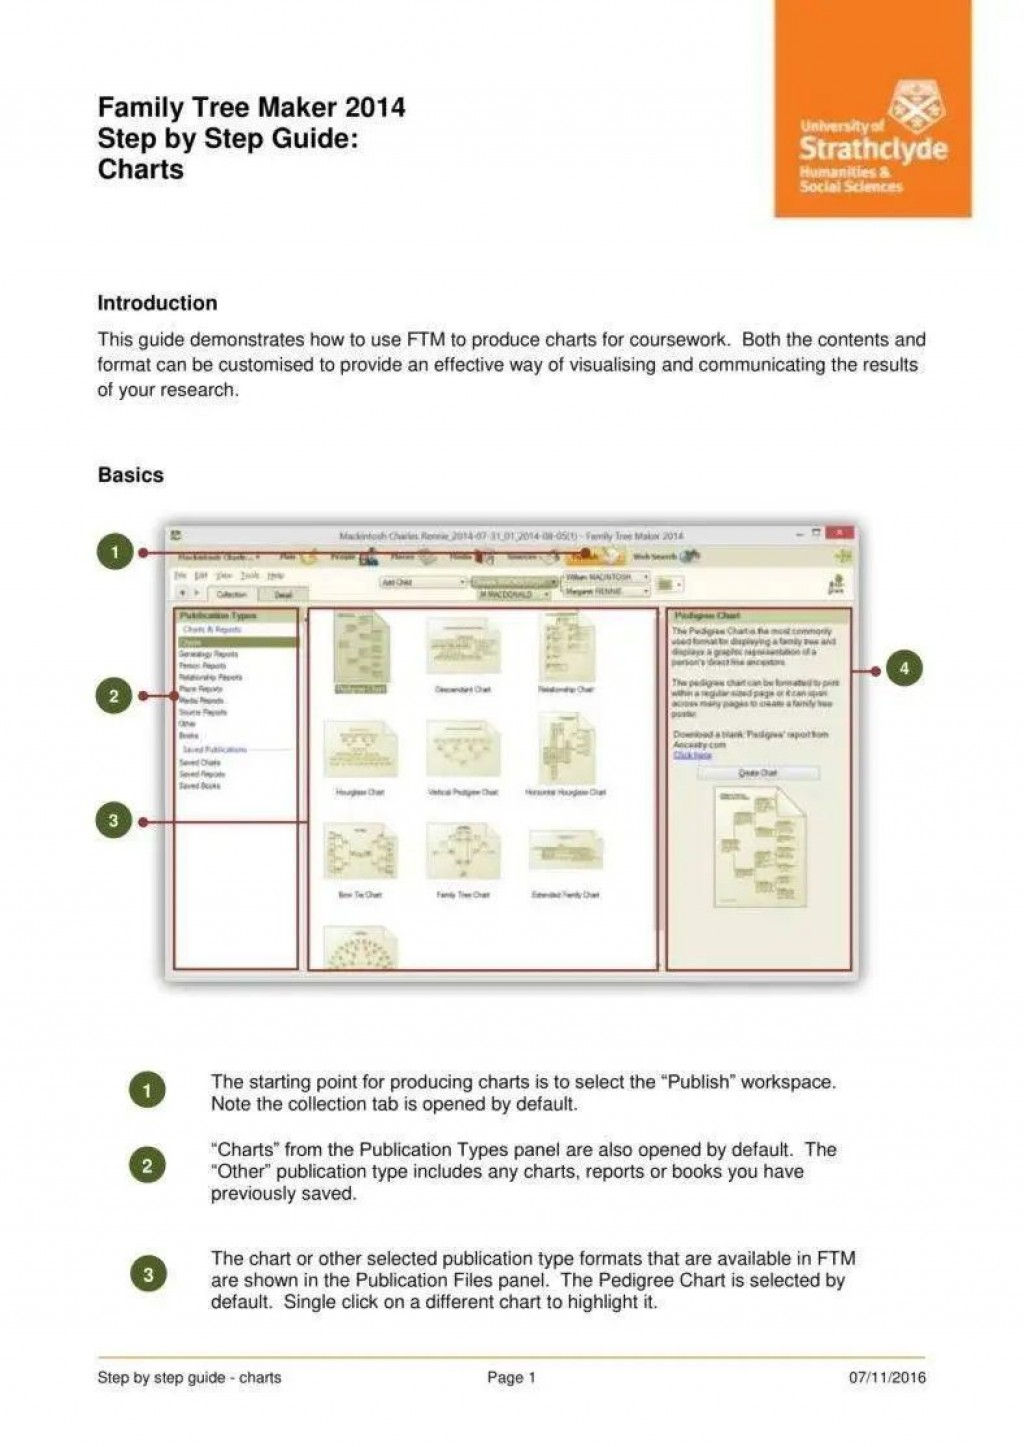 007 Unbelievable Family Tree Book Template Sample  Photo FreeLarge